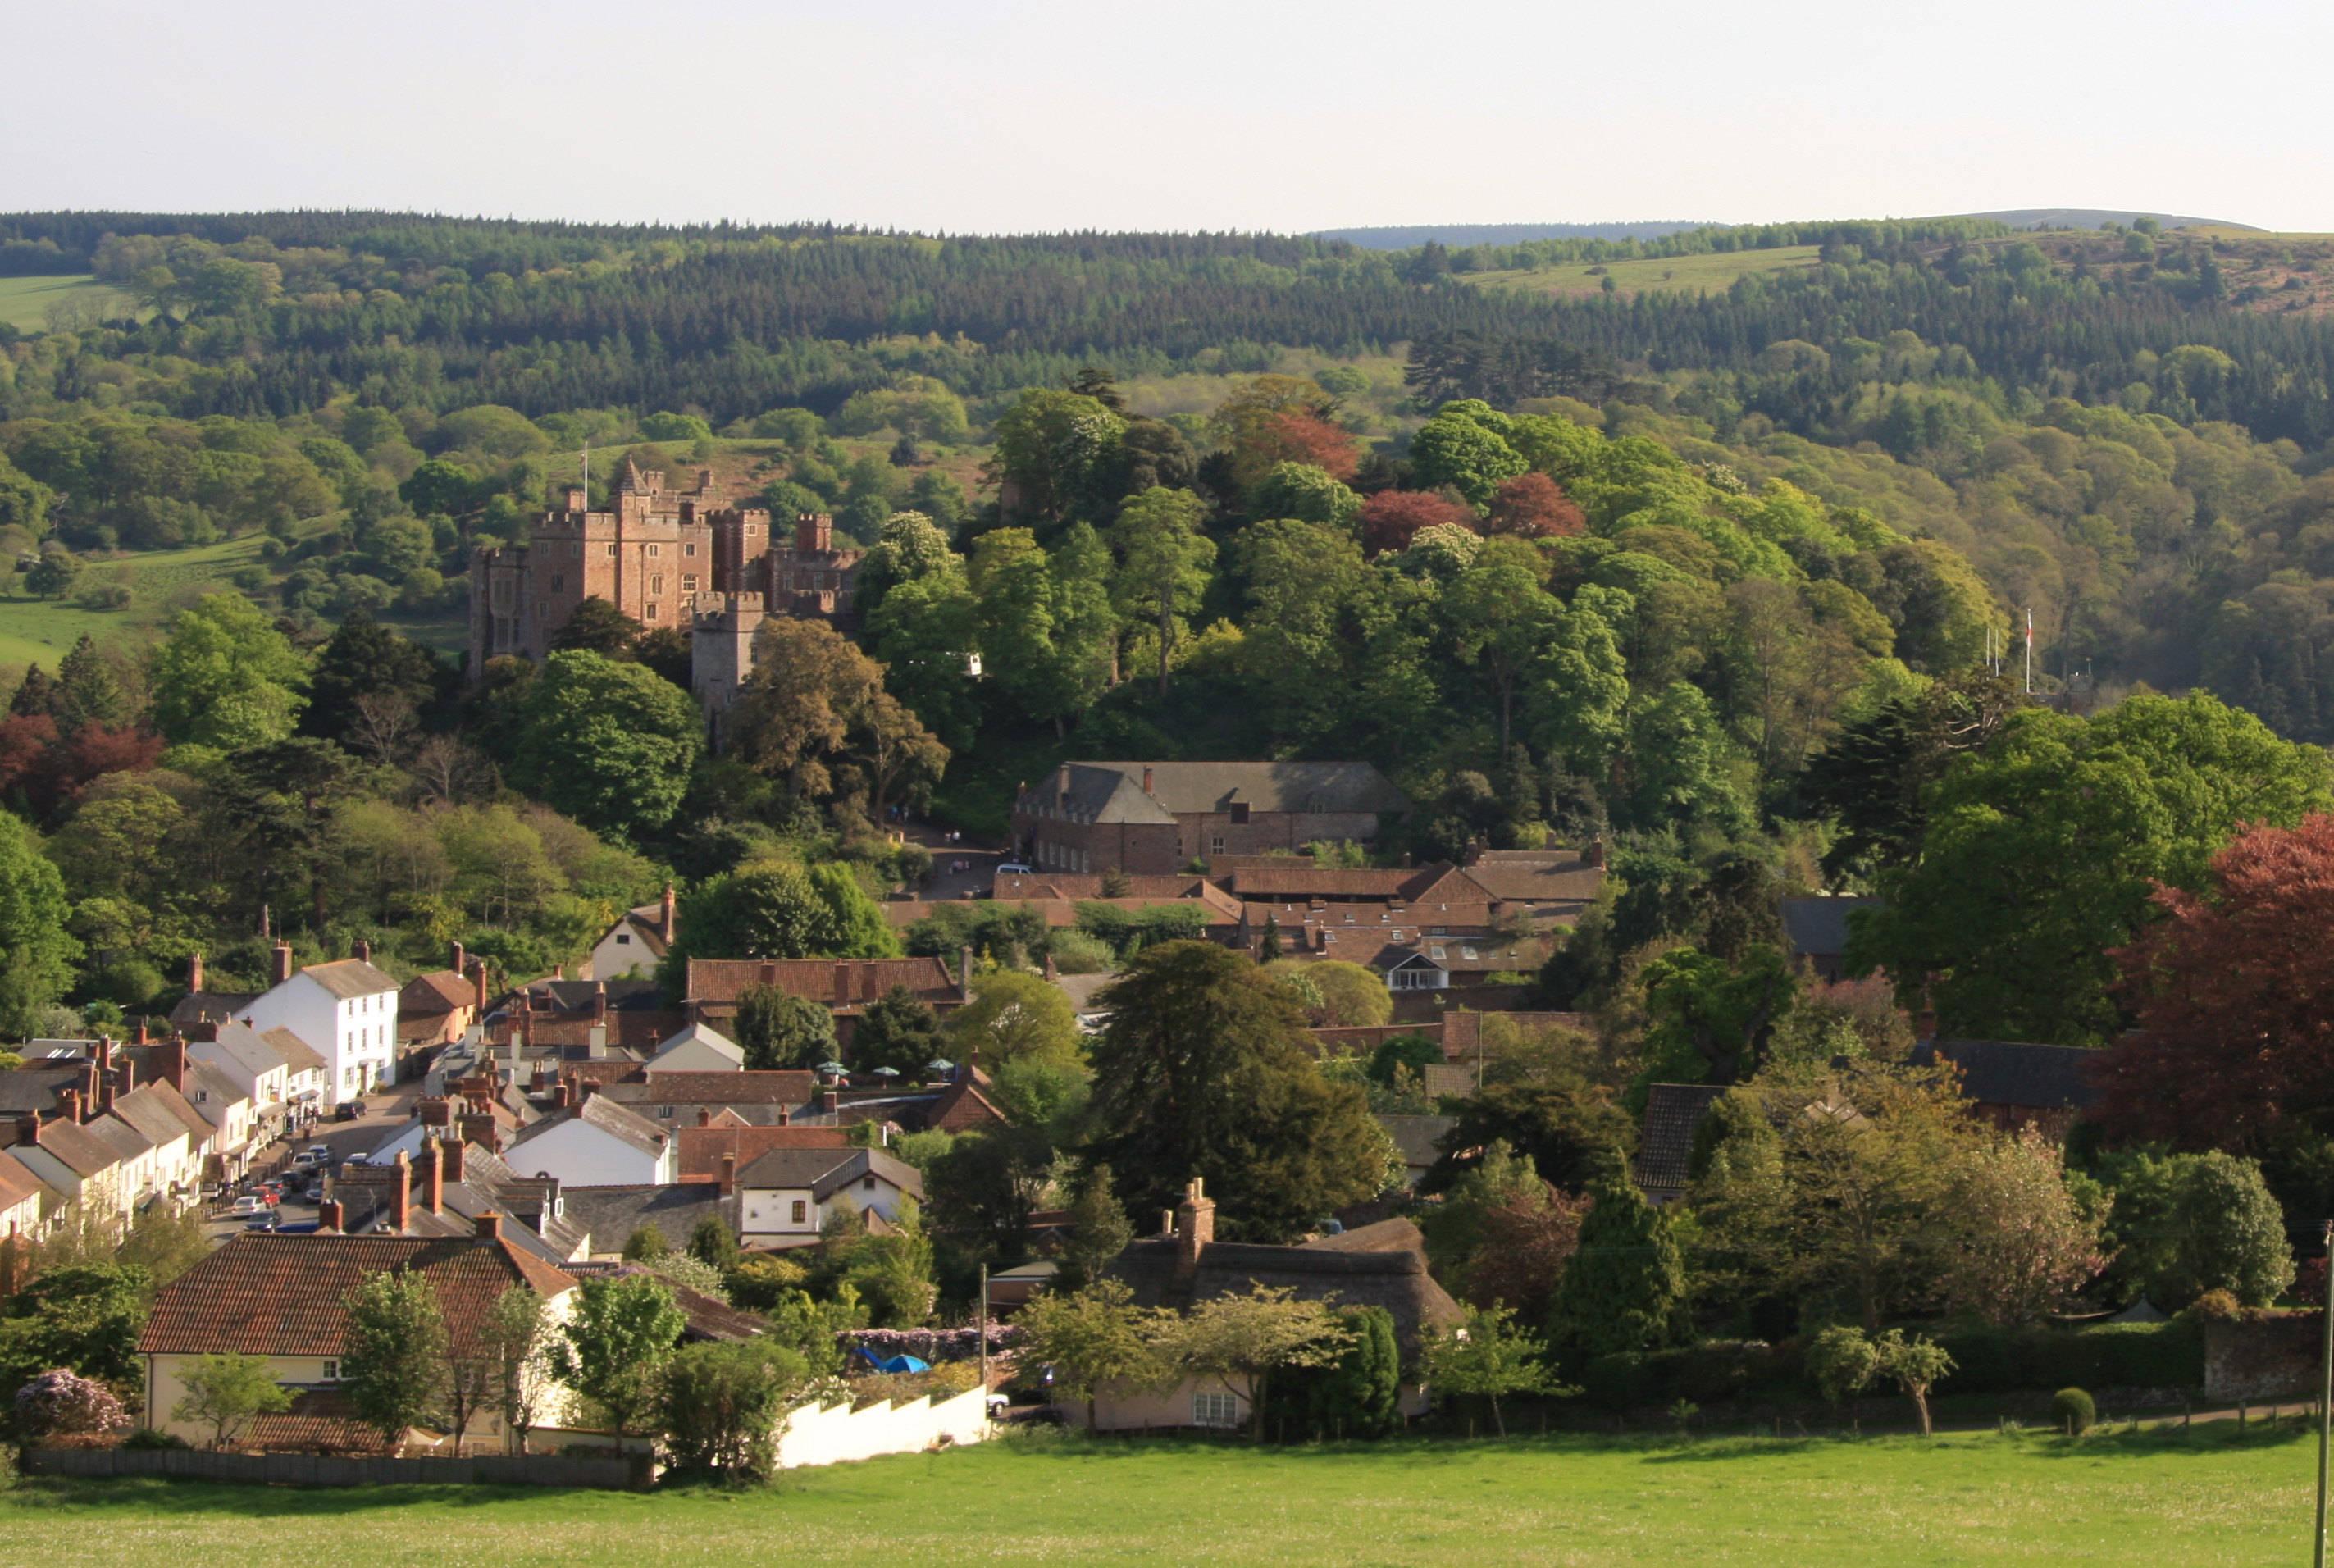 Dunster-castle-village-8-by-10_edited-11